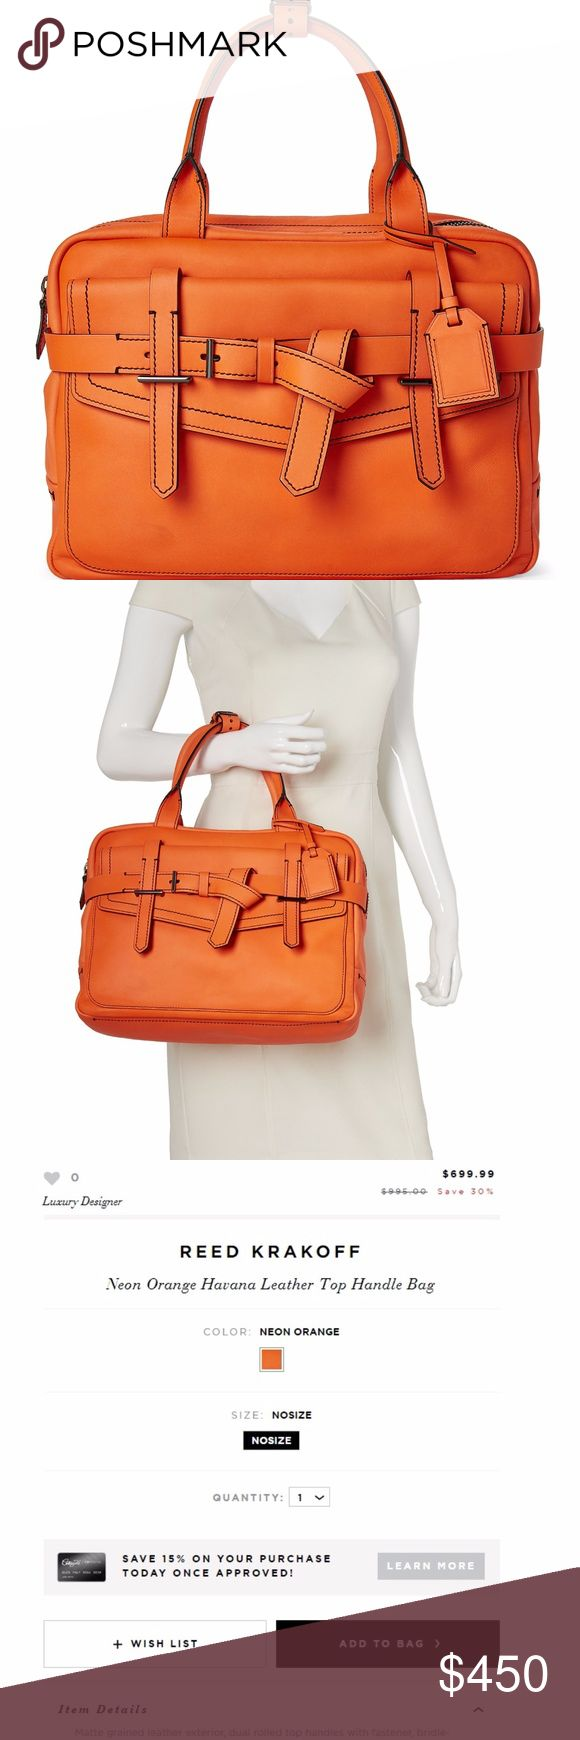 """REED KRAKOFF Neon Orange Havana Leather Bag Matte grained leather exterior, dual rolled top handles, bridle-inspired strap detailing, contrast stitching, front snap-flap pocket. Gunmetal hardware, rear pocket with hidden magnetic closure, detachable ID tag, fabric lining, interior zip and slip pockets, top zip closure, Measurements: 14"""" L x 10"""" H x 5"""" W , Leather body, Made in Italy NO TRADES Currently selling on Century21 for $700.. Gently worn, has some discoloration where the neon rubbed…"""